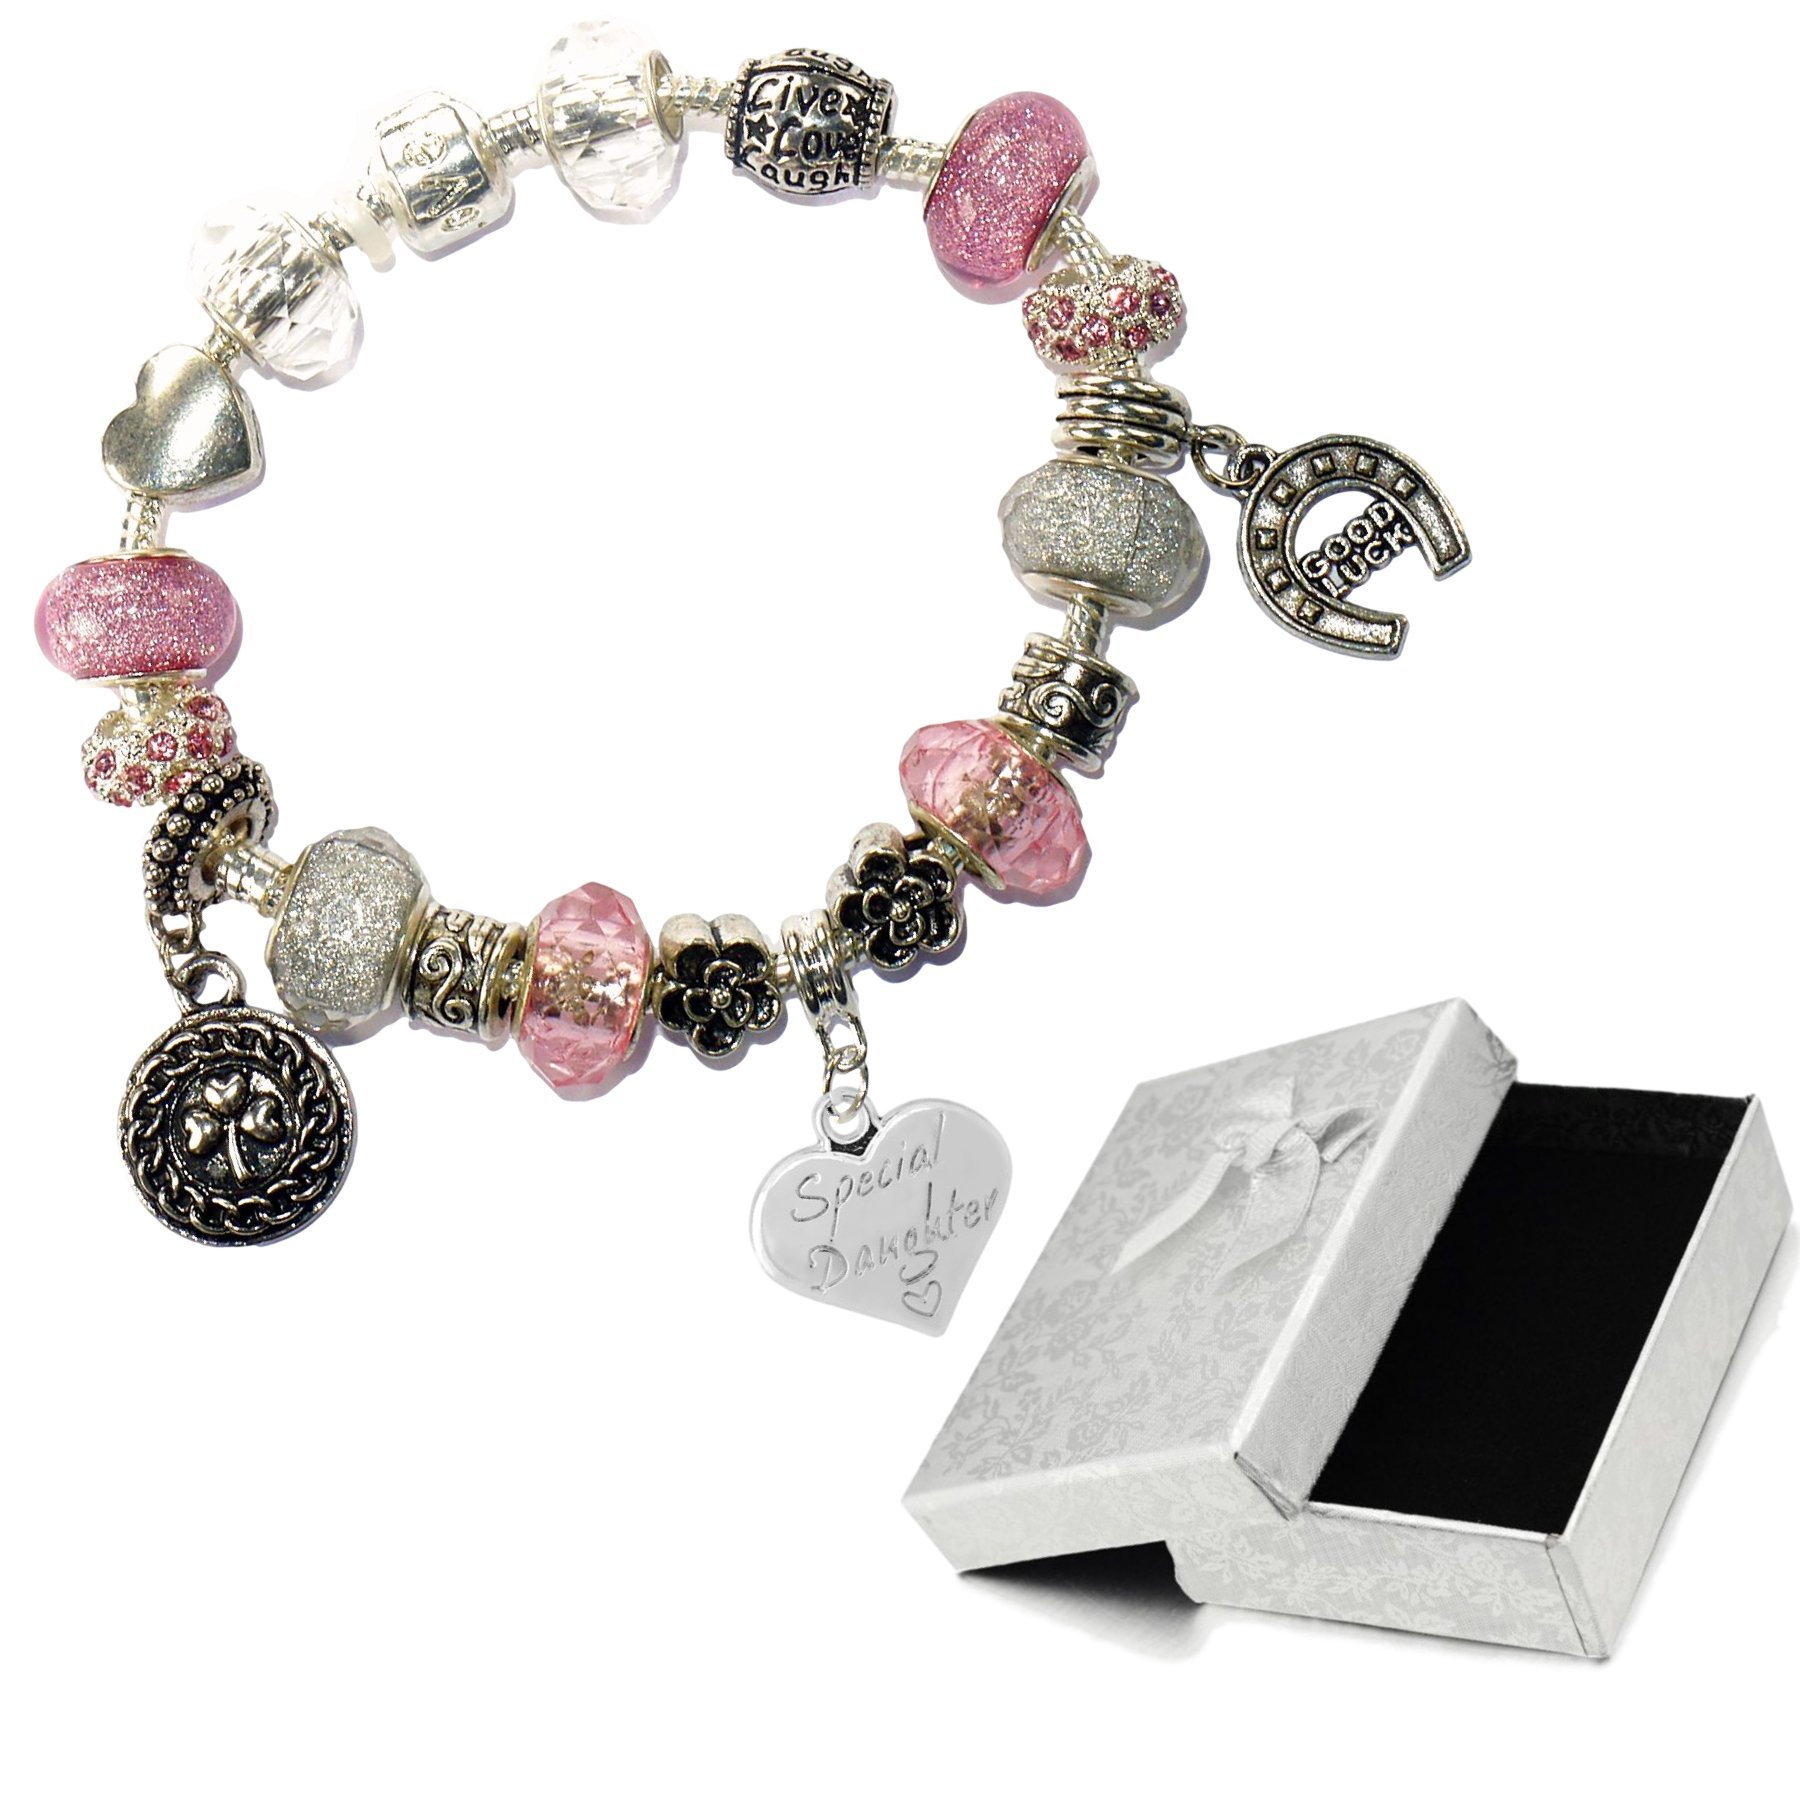 Charm Buddy Special Daughter Pink Silver Crystal Good Luck Pandora Style Bracelet With Charms Gift Box